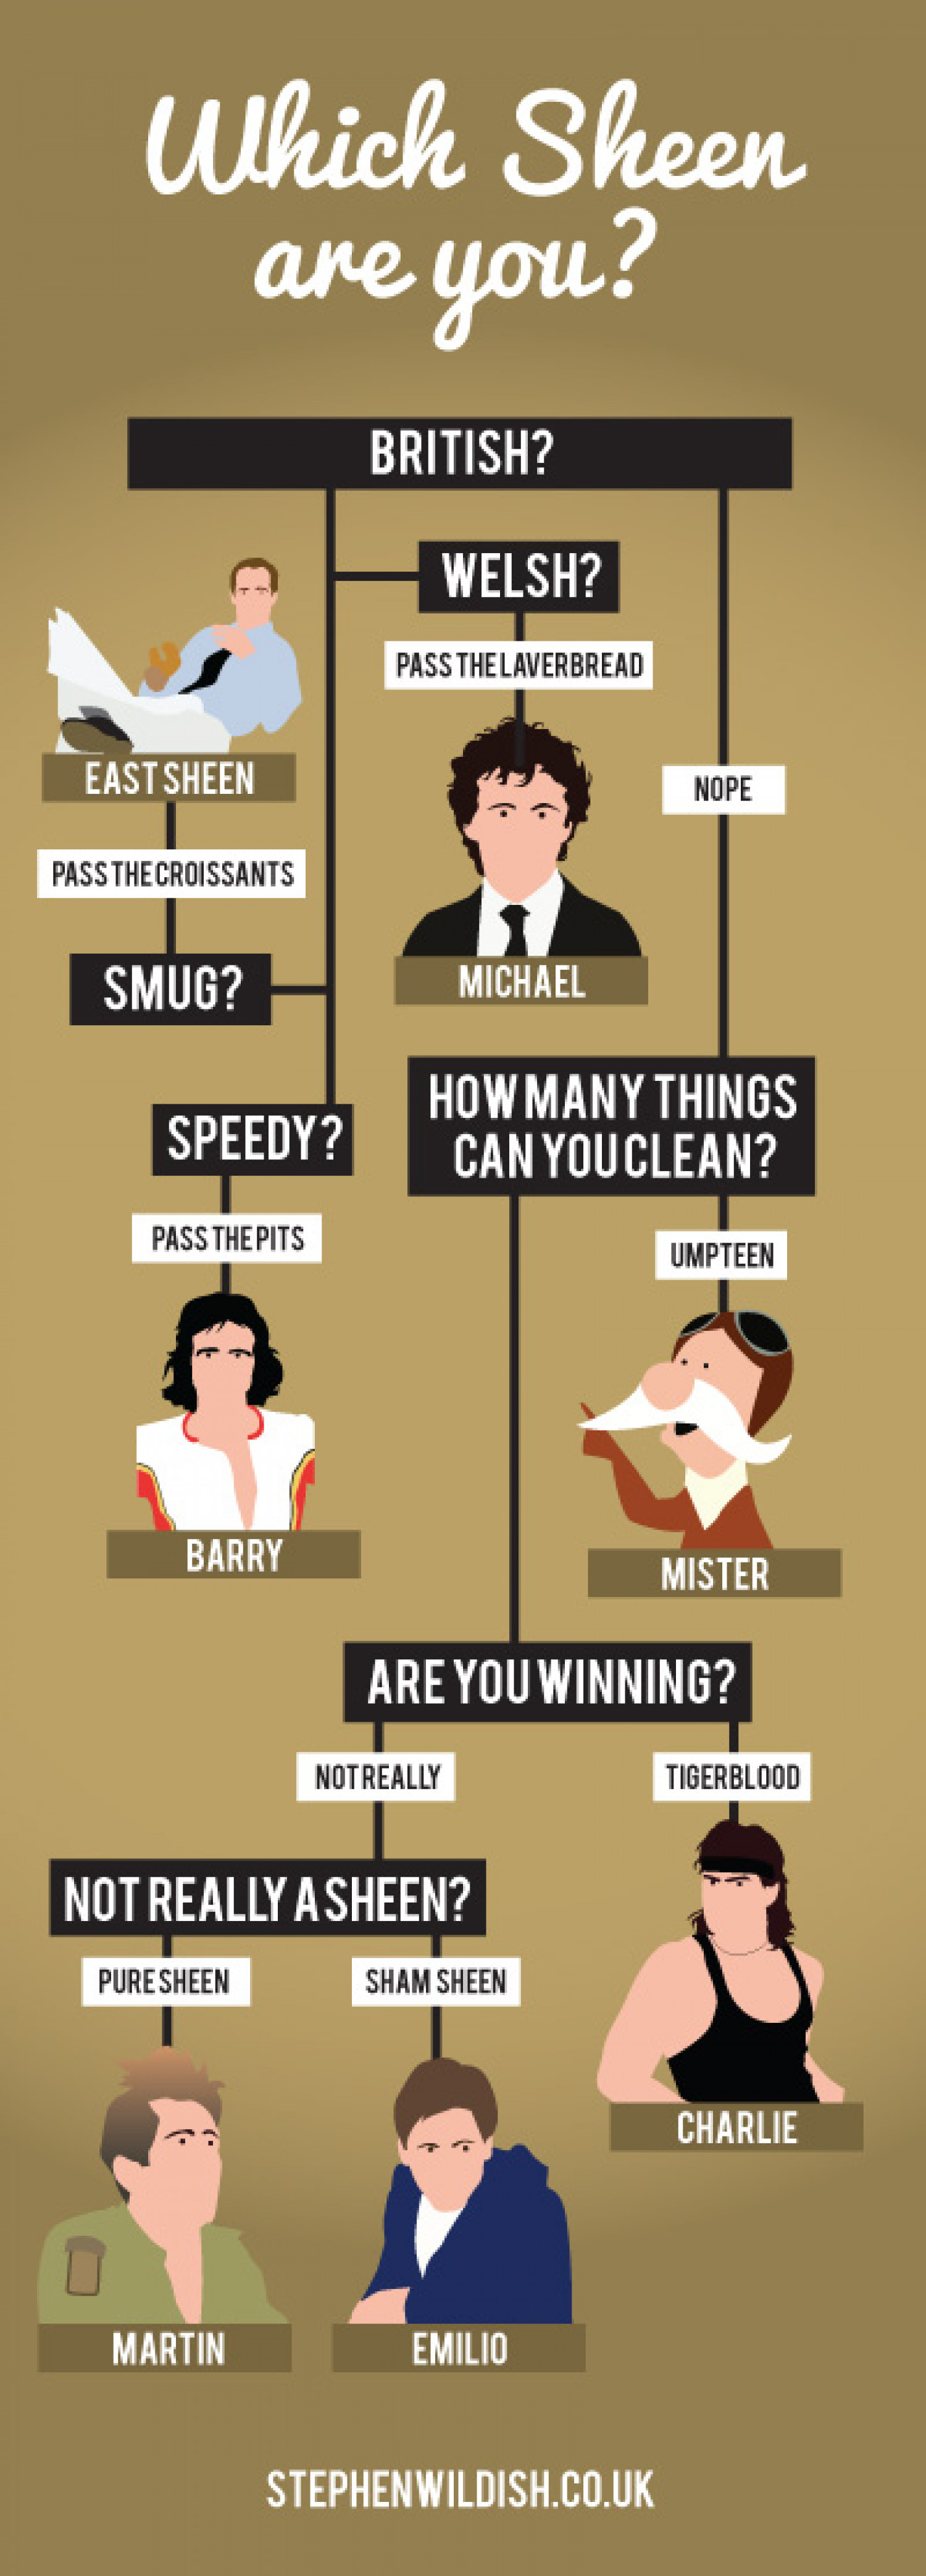 Which Sheen Are You? Infographic